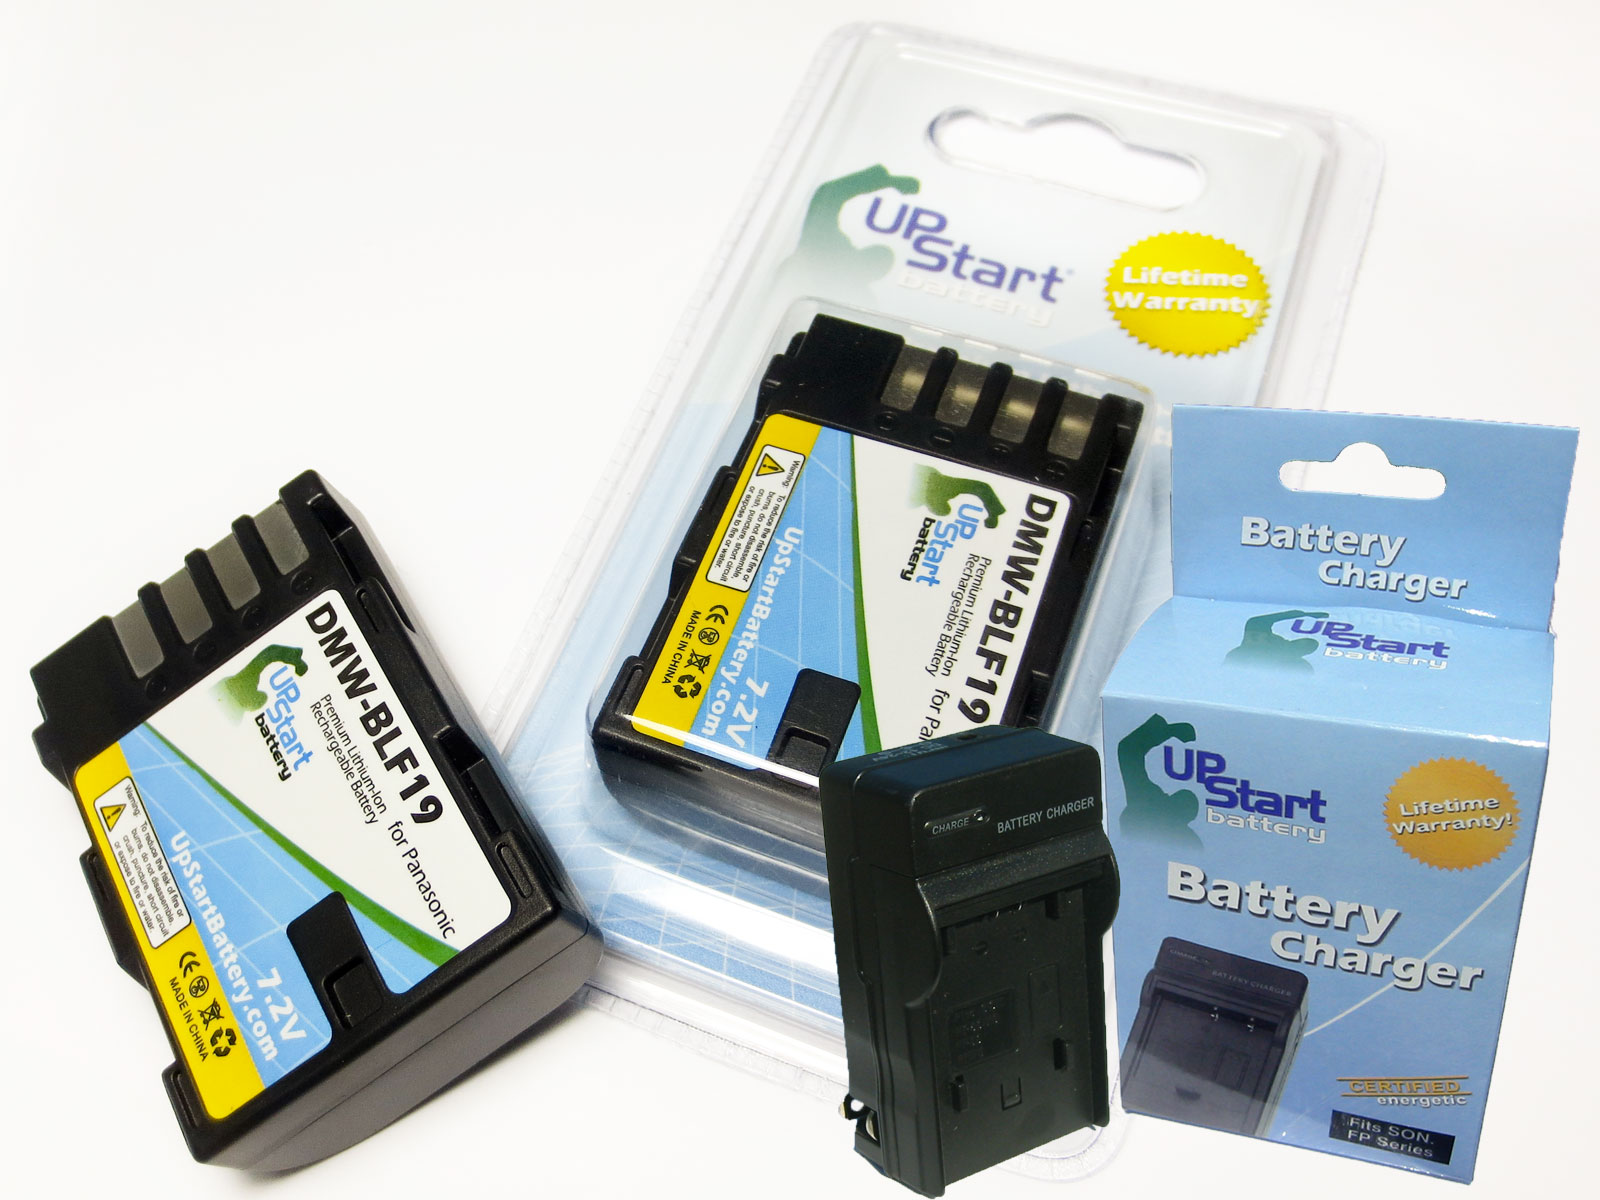 UpStart Battery 2x Pack - Panasonic Lumix DMC-GH3H Digital Camera Battery + Charger - Replacement Kit for Panasonic DMW-BLF19 at Sears.com